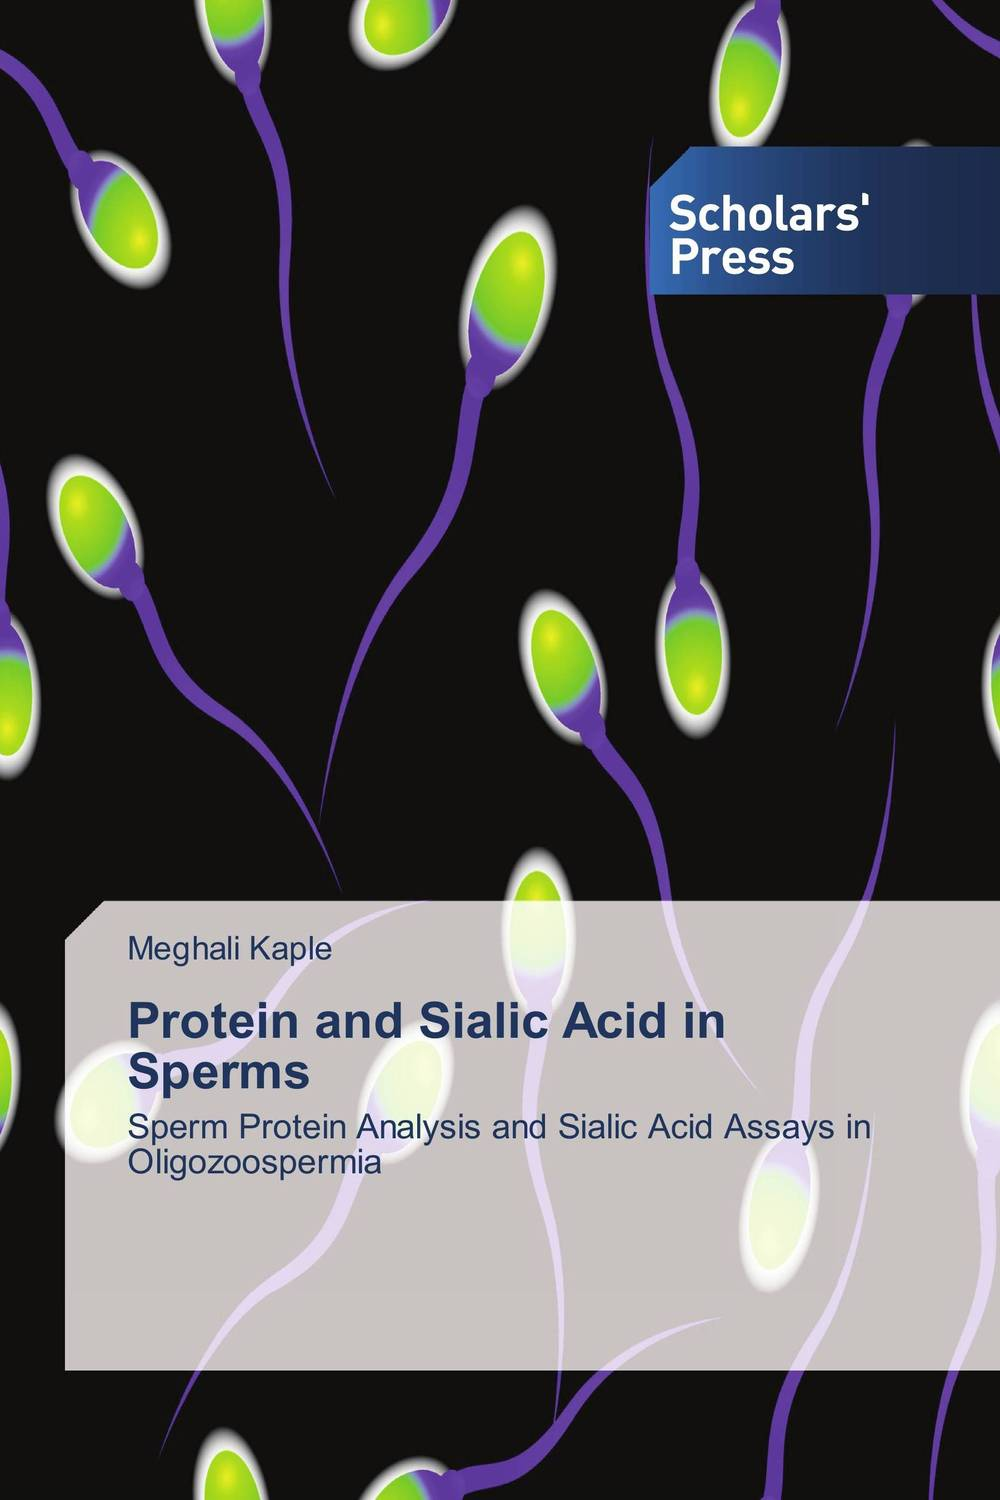 Protein and Sialic Acid in Sperms therapeutic management of infertility in cattle